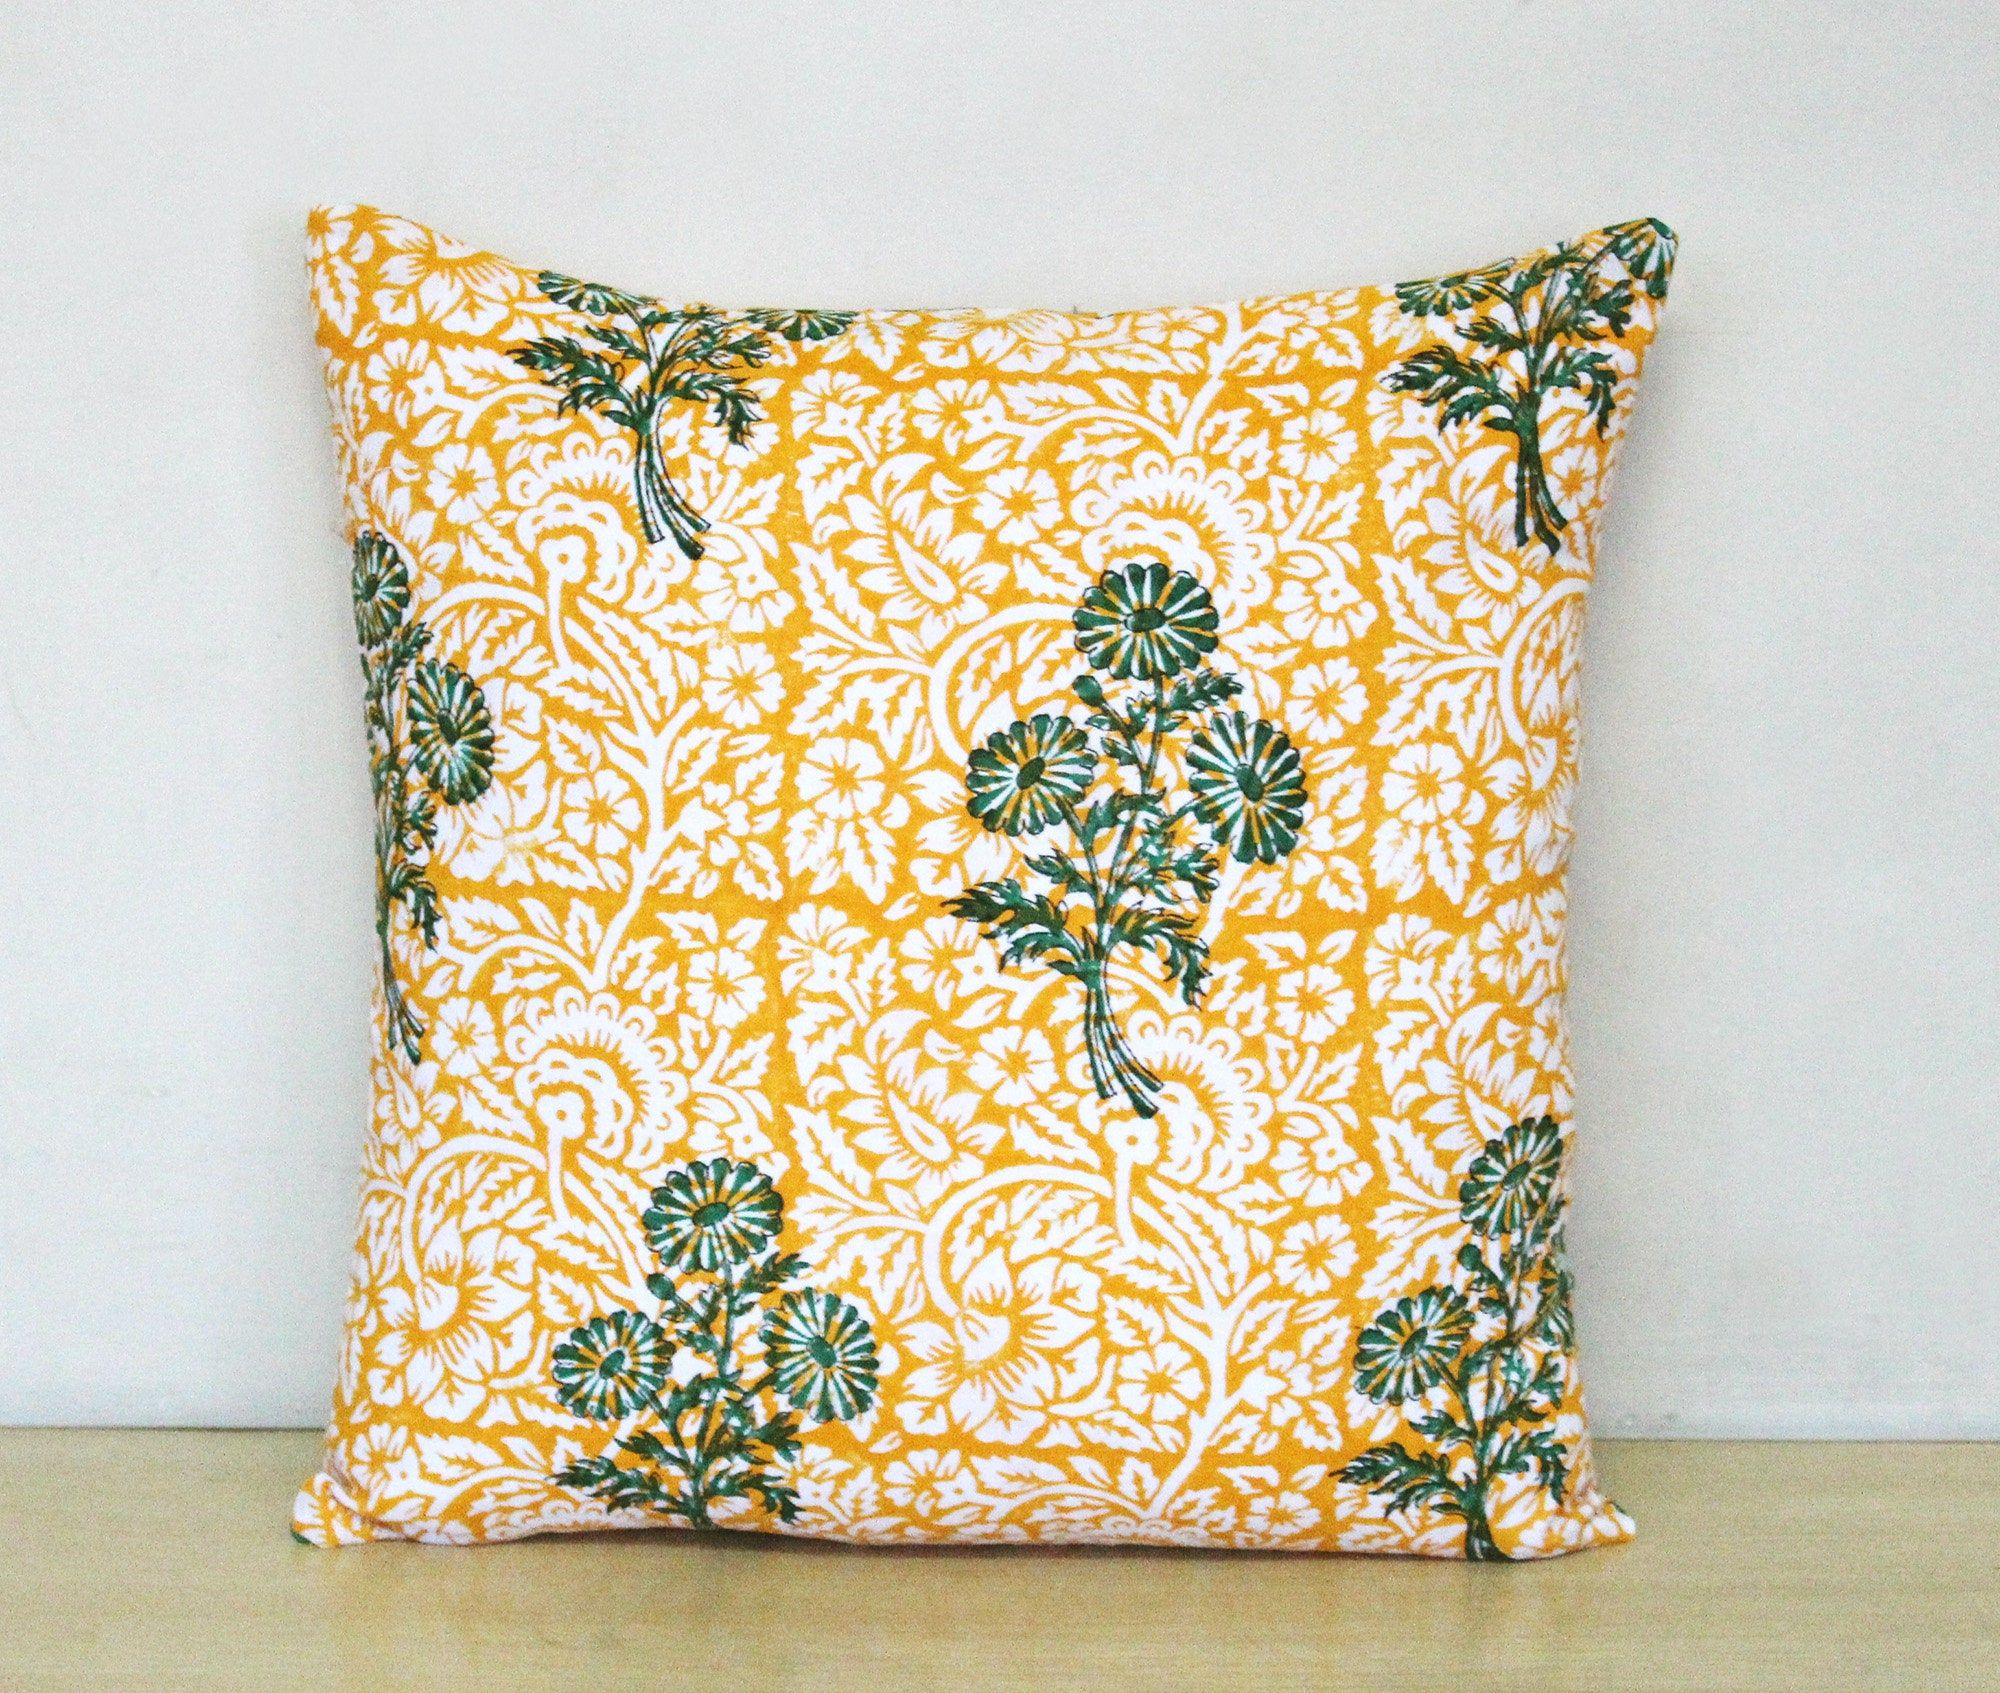 Indian Handmade Floral Block Print Cotton Cushion Cover Pillow Case